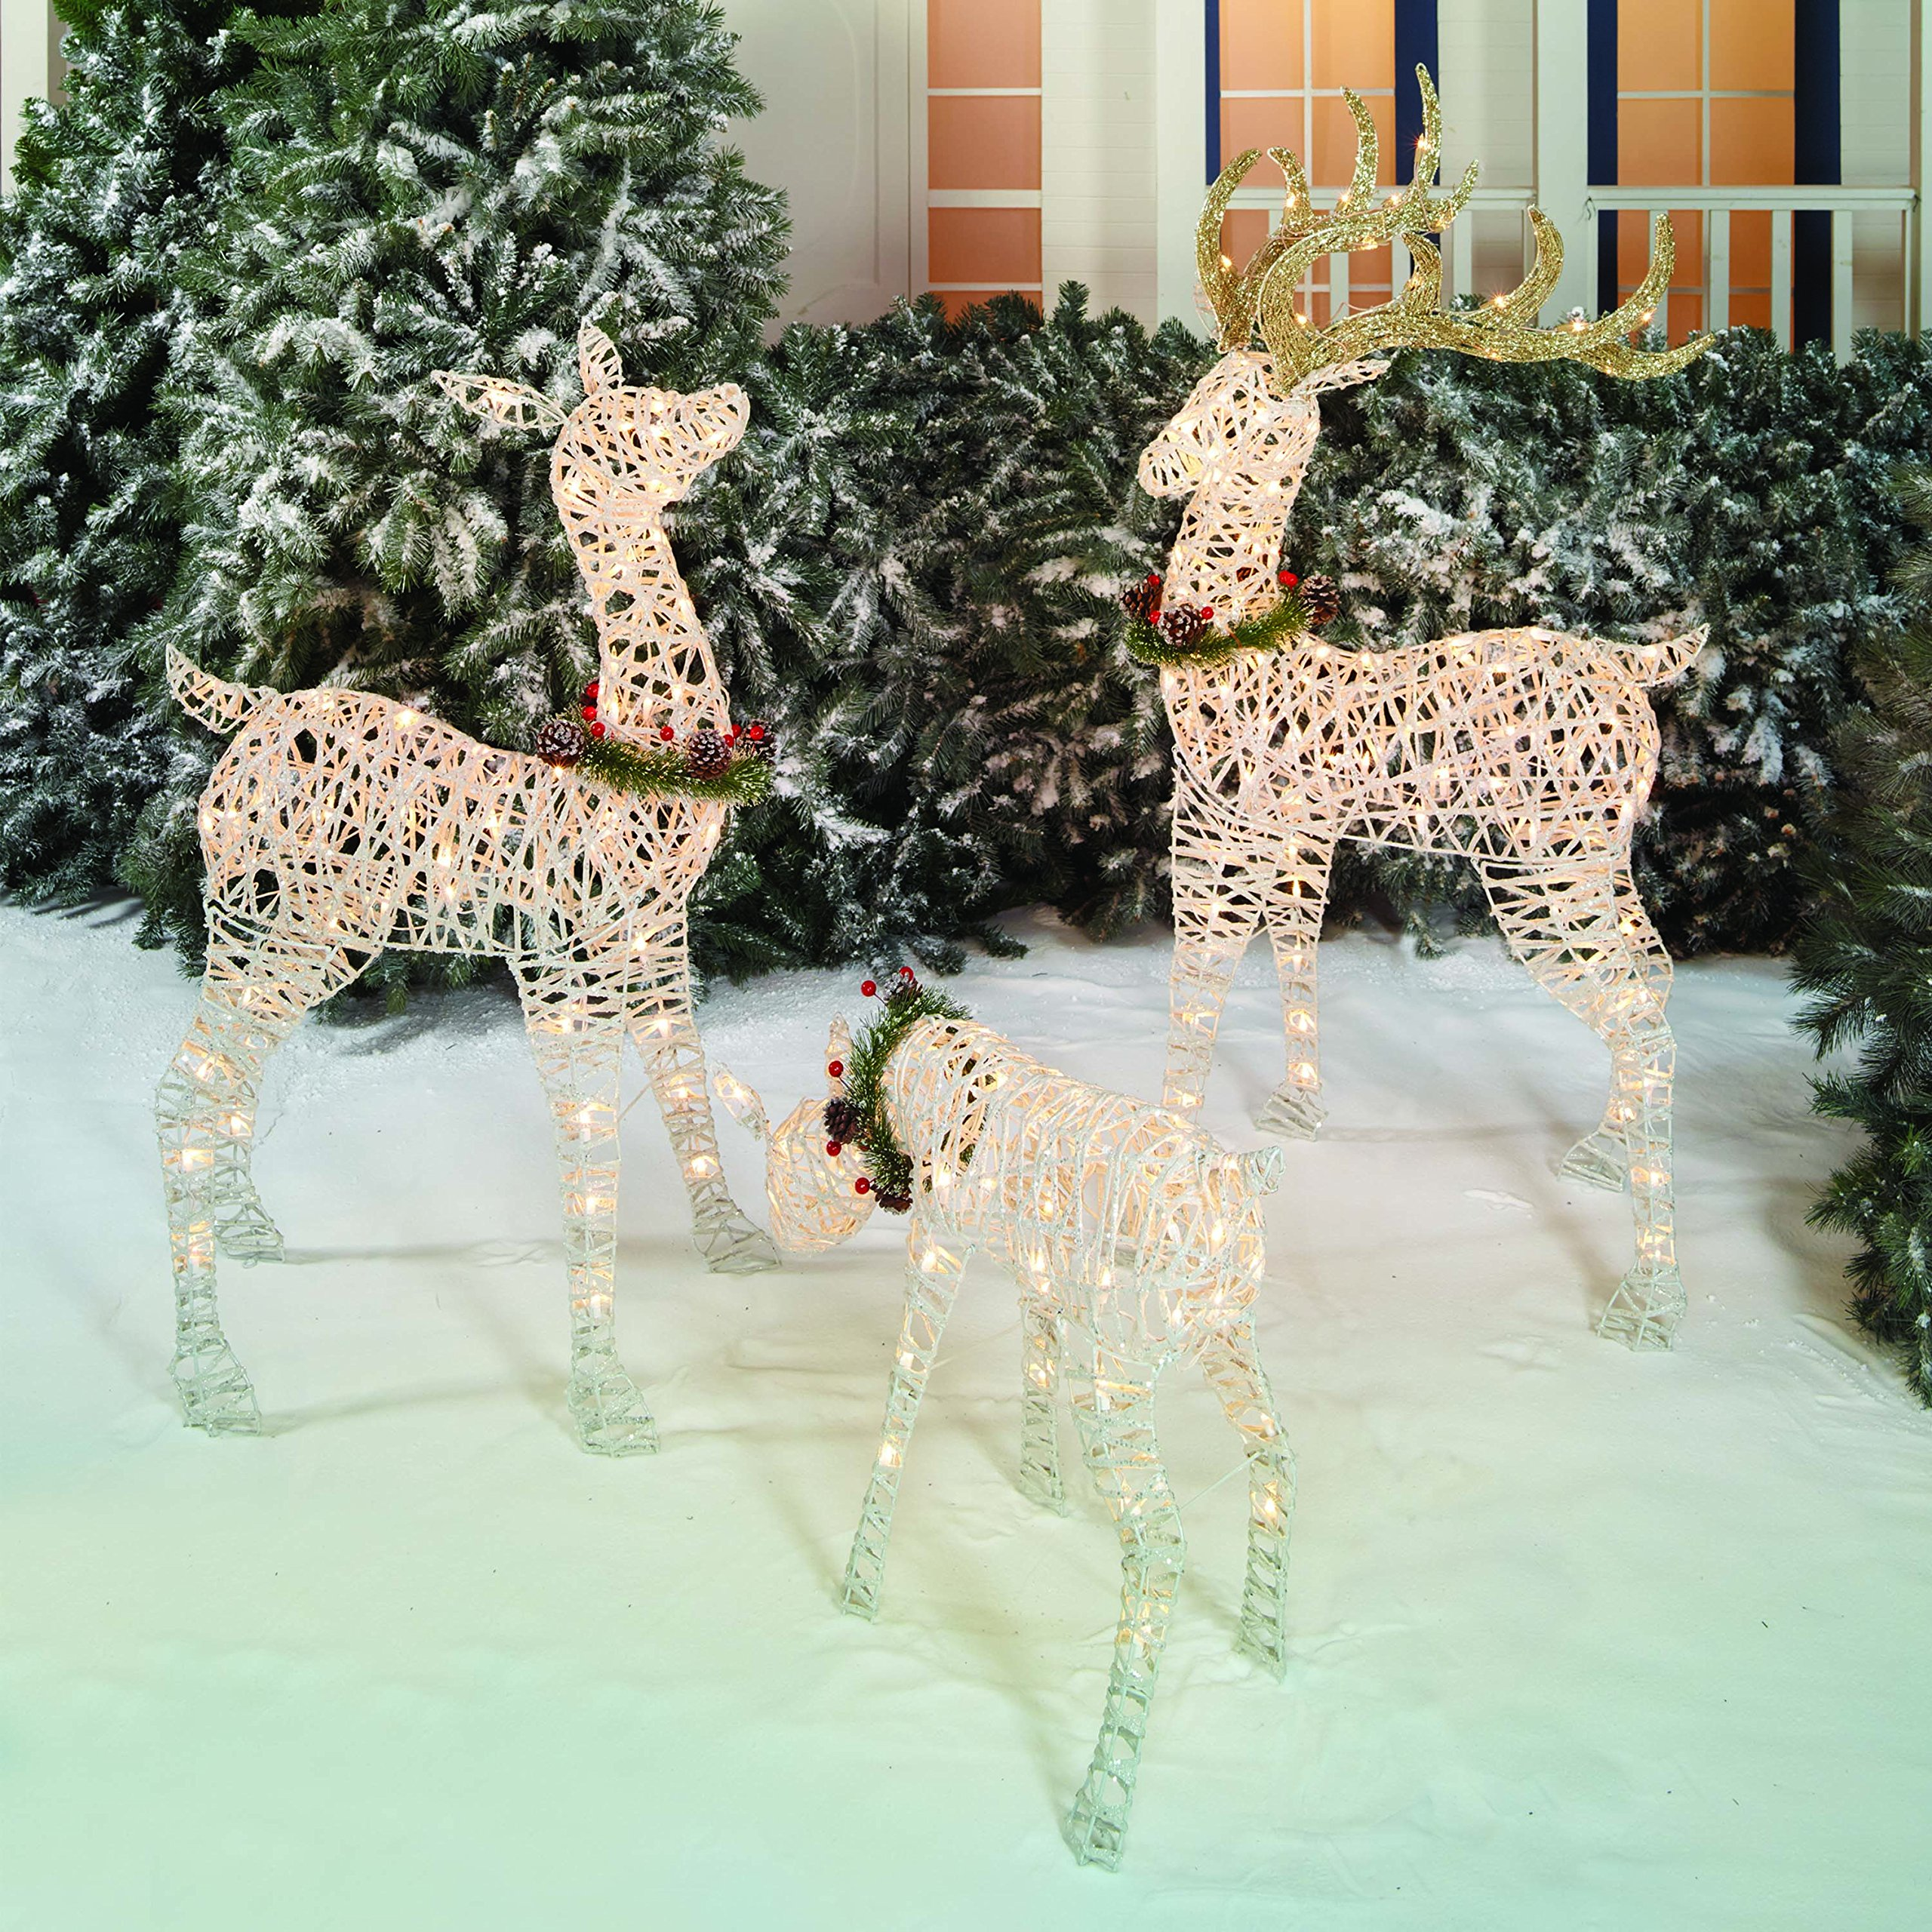 outdoor christmas reindeer family 3 set 220 lights 52 buck 44 doe 28 - Indoor Christmas Reindeer Decorations